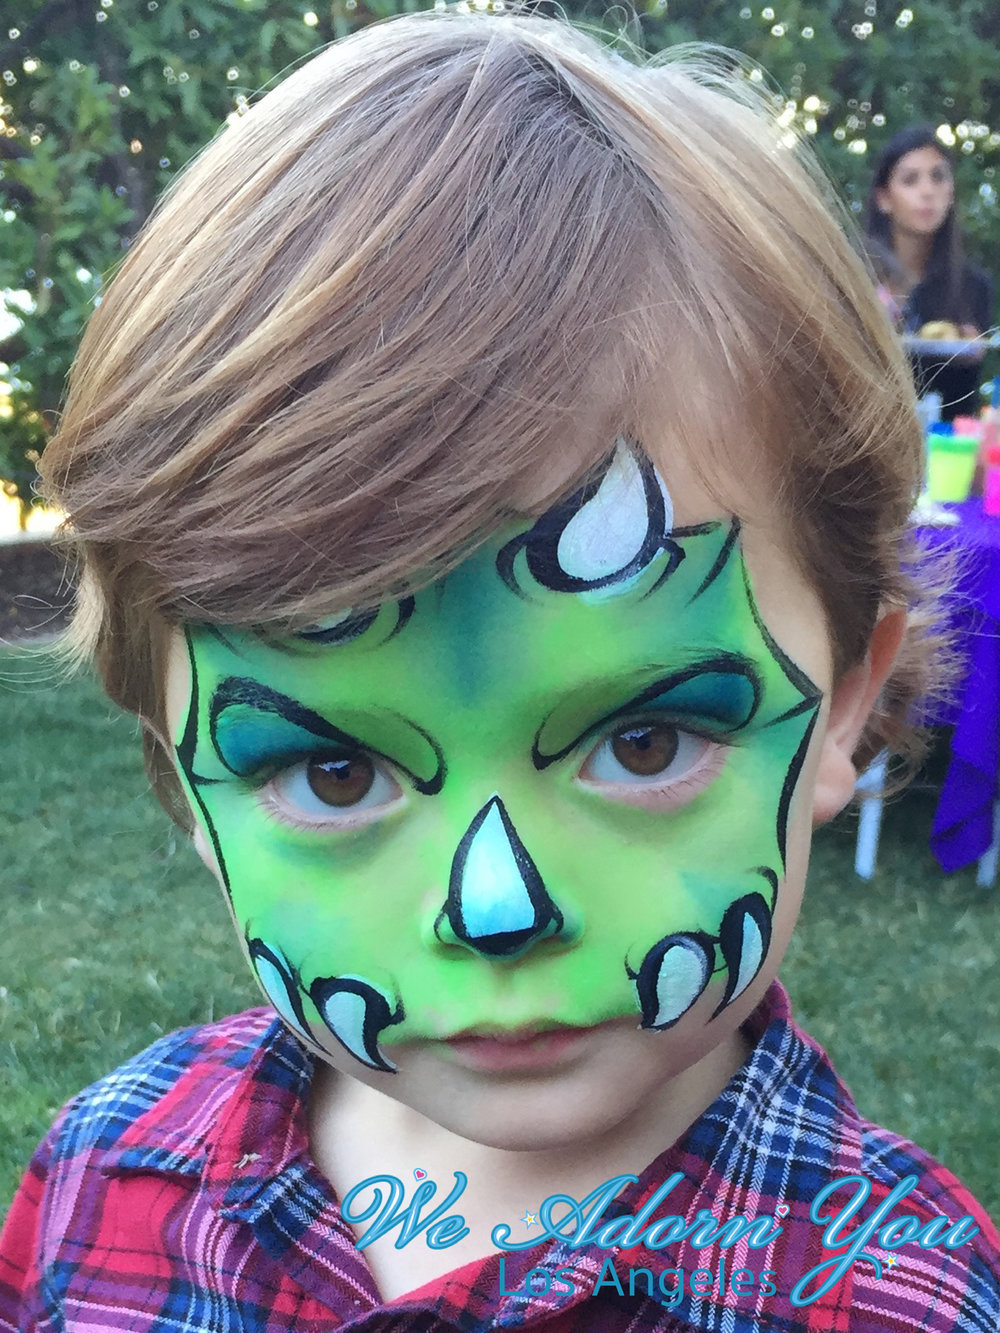 We Adorn You Los Angeles Face Painting Dino.jpg